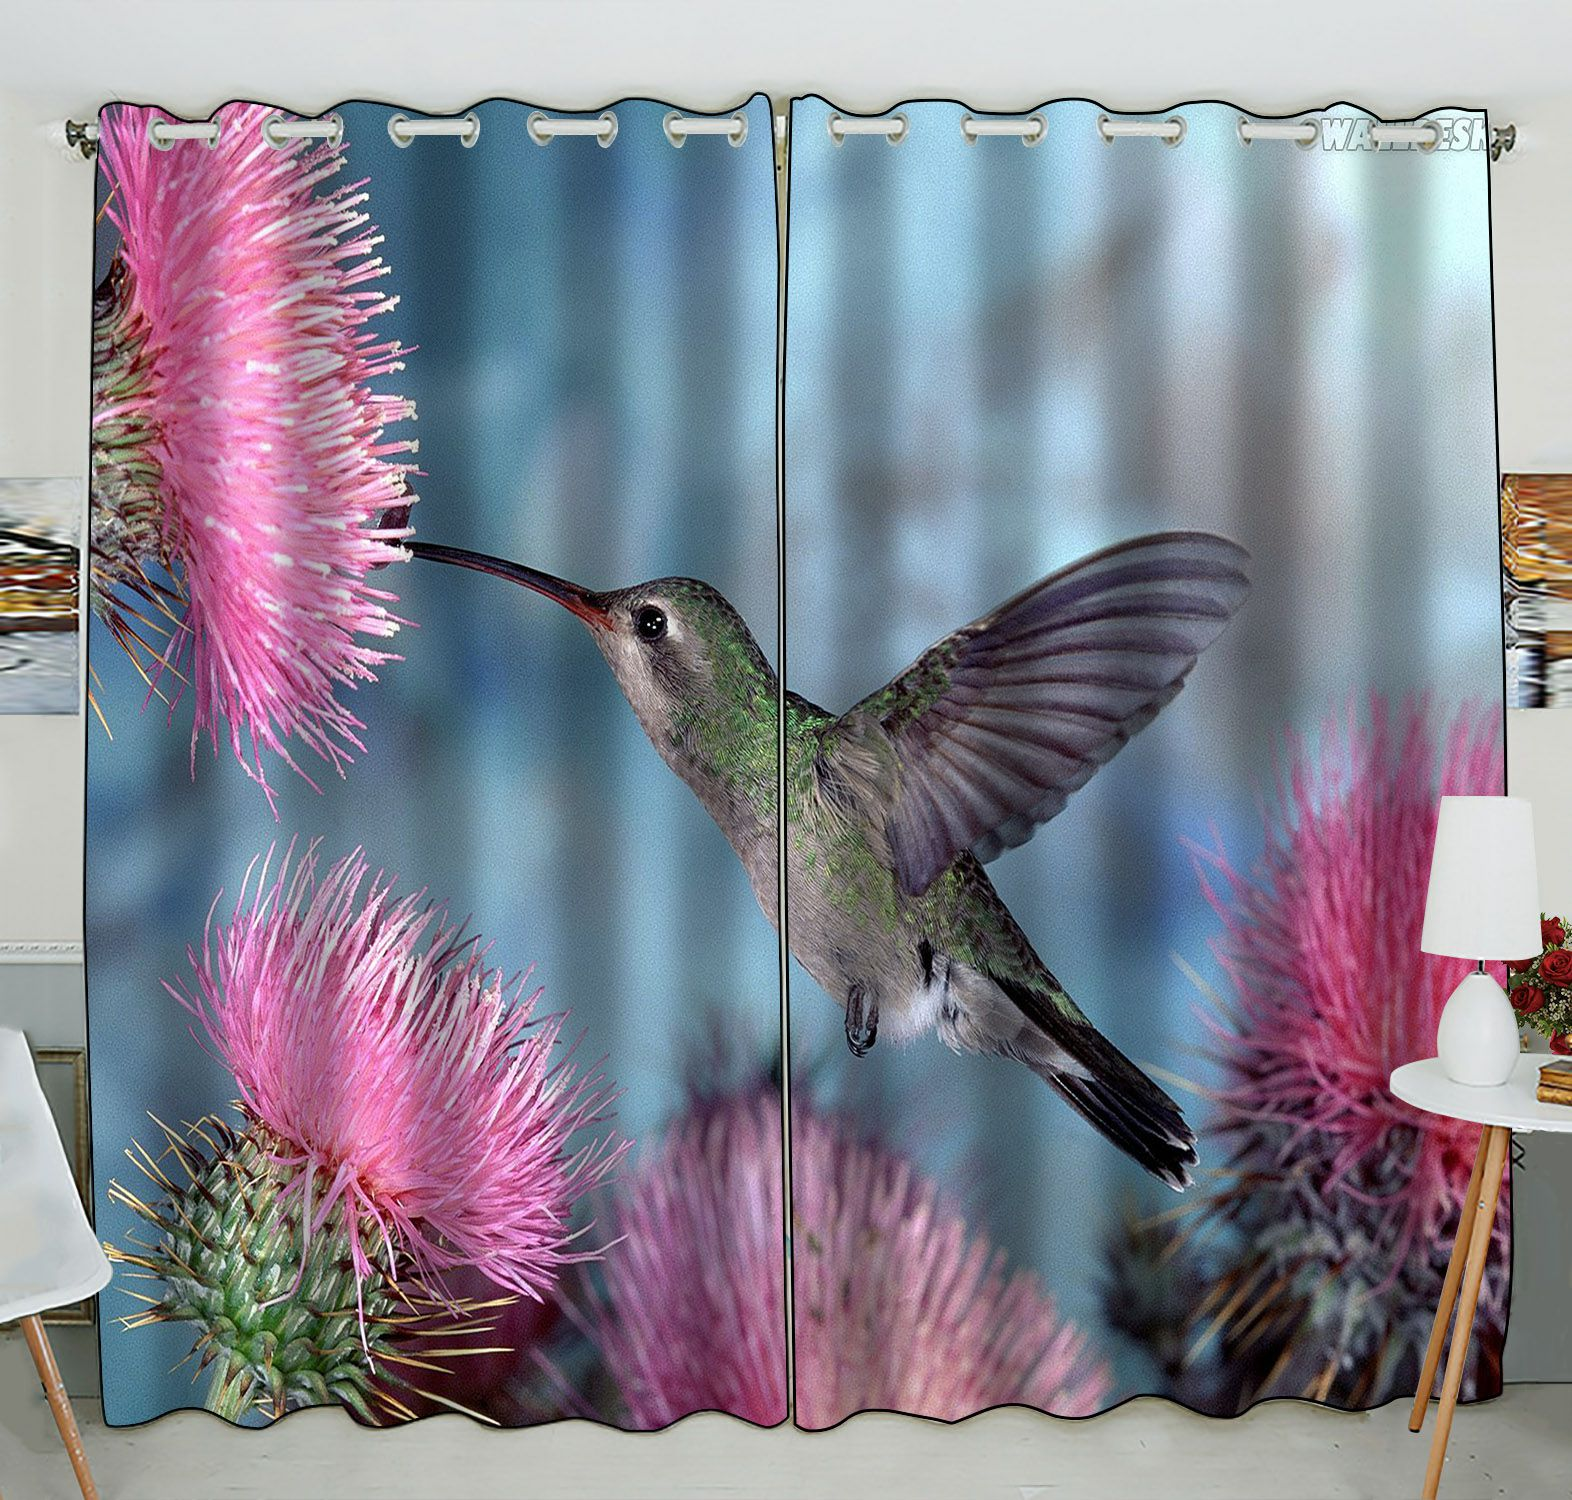 ZKGK Hummingbird Window Curtain Drapery/Panels/Treatment For Living Room Bedroom Kids Rooms 52x84 inches Two Panel